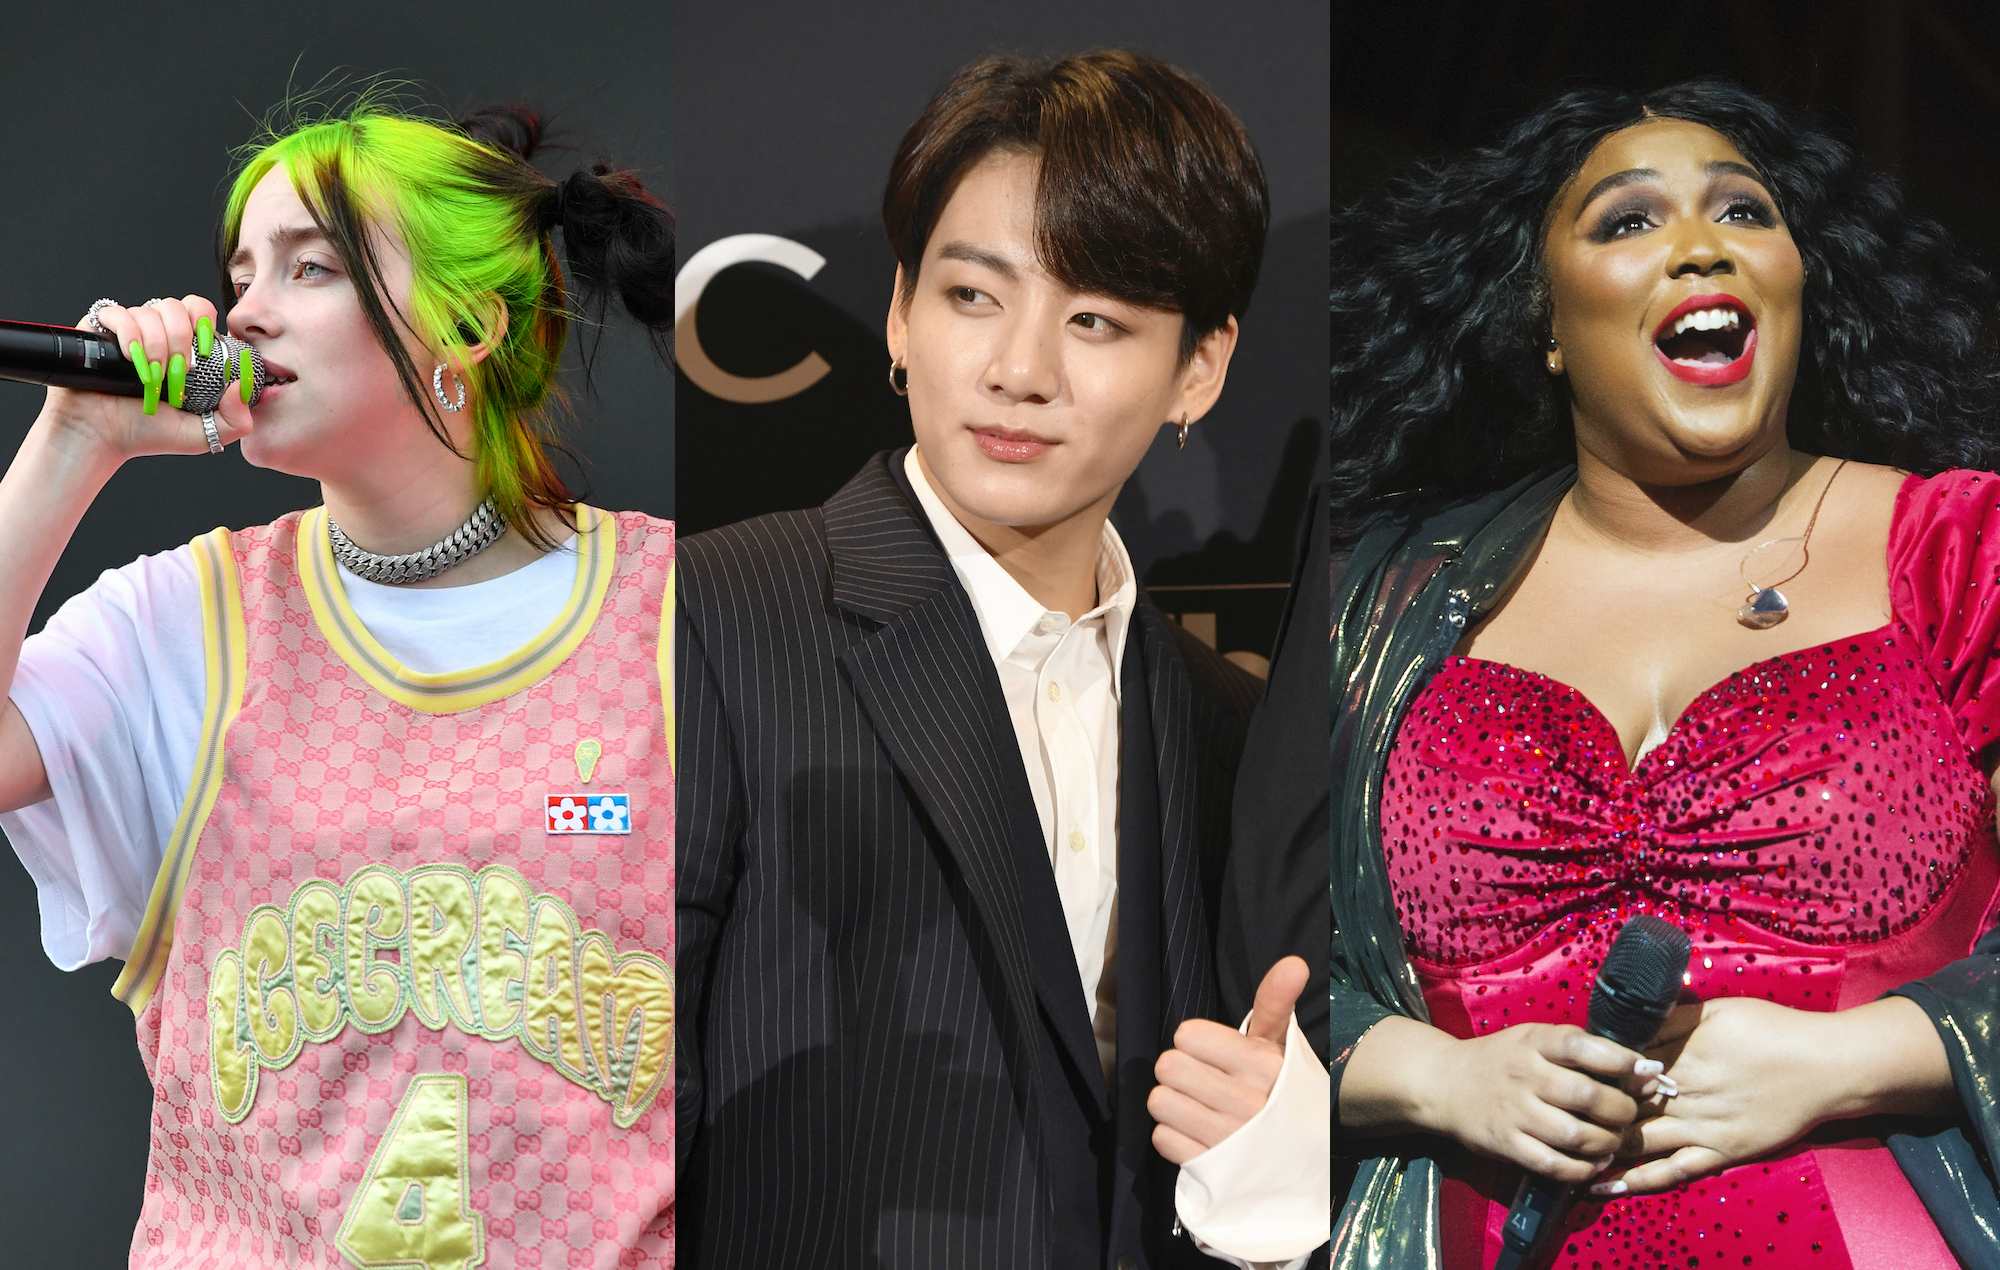 grammys nominations a billie eilish sweep bts snub and lizzo shocker a billie eilish sweep bts snub and